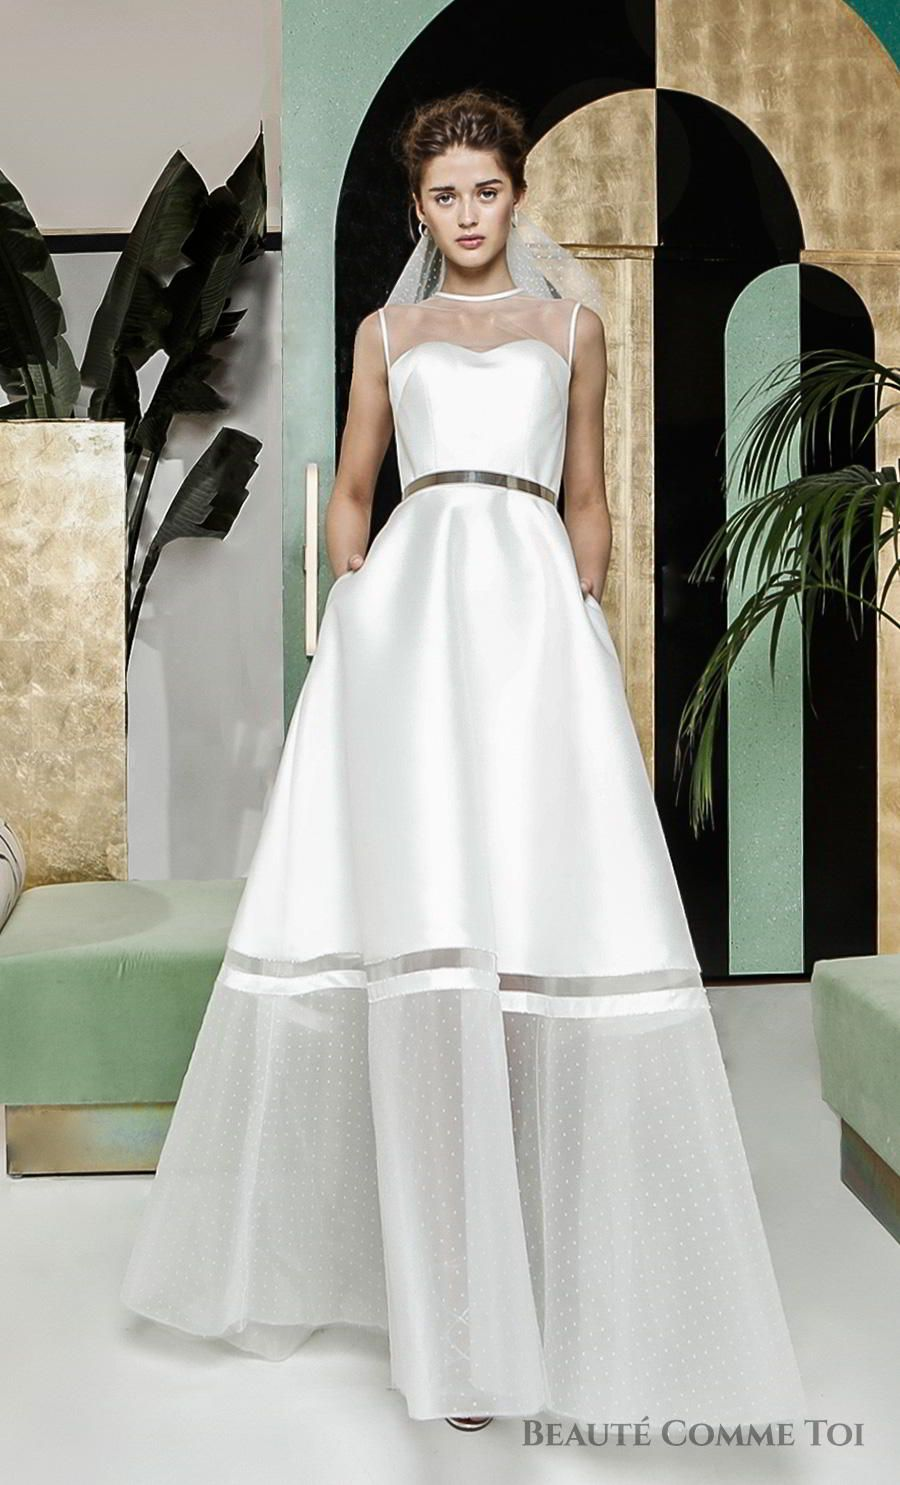 Breathtaking Modern Vintage Wedding Dresses By Beaute Comme Toi